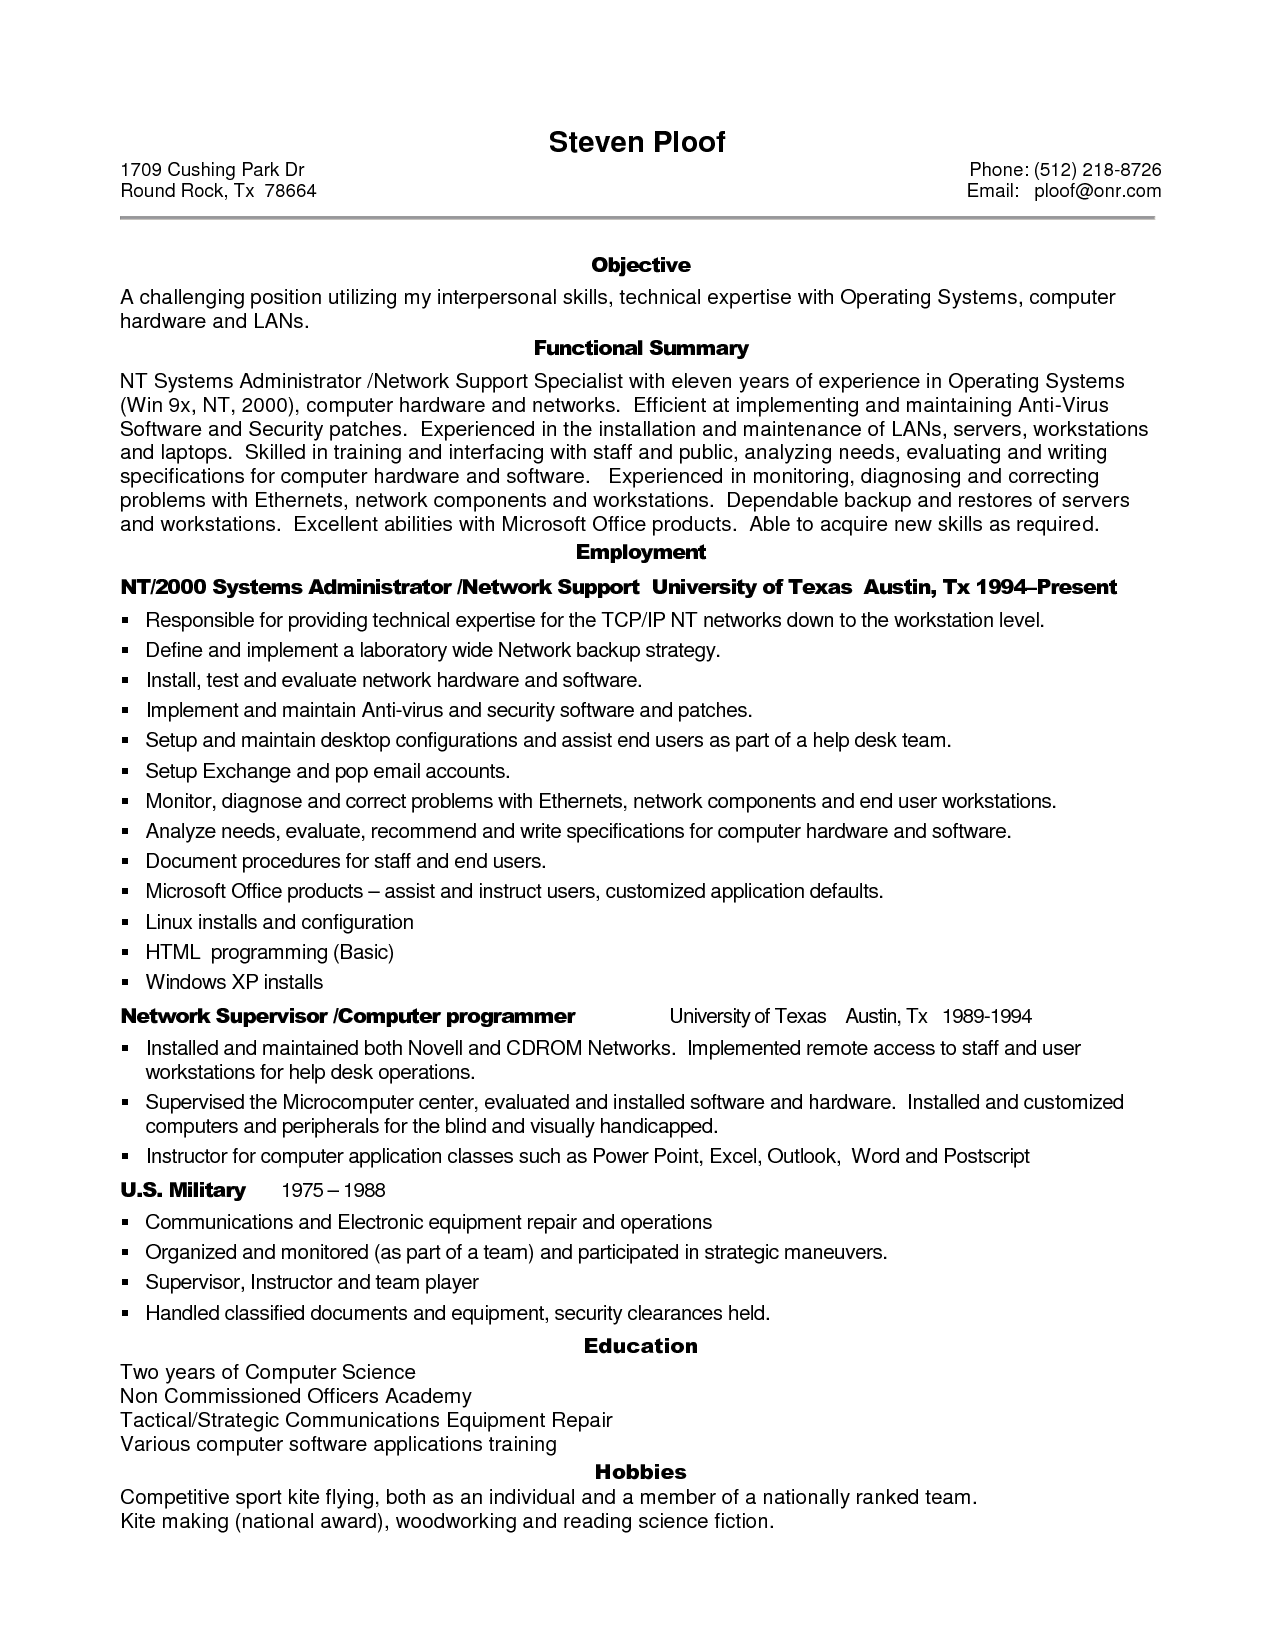 Experience Resume Template Sample Resume For Experienced It Professional Sample Resume For